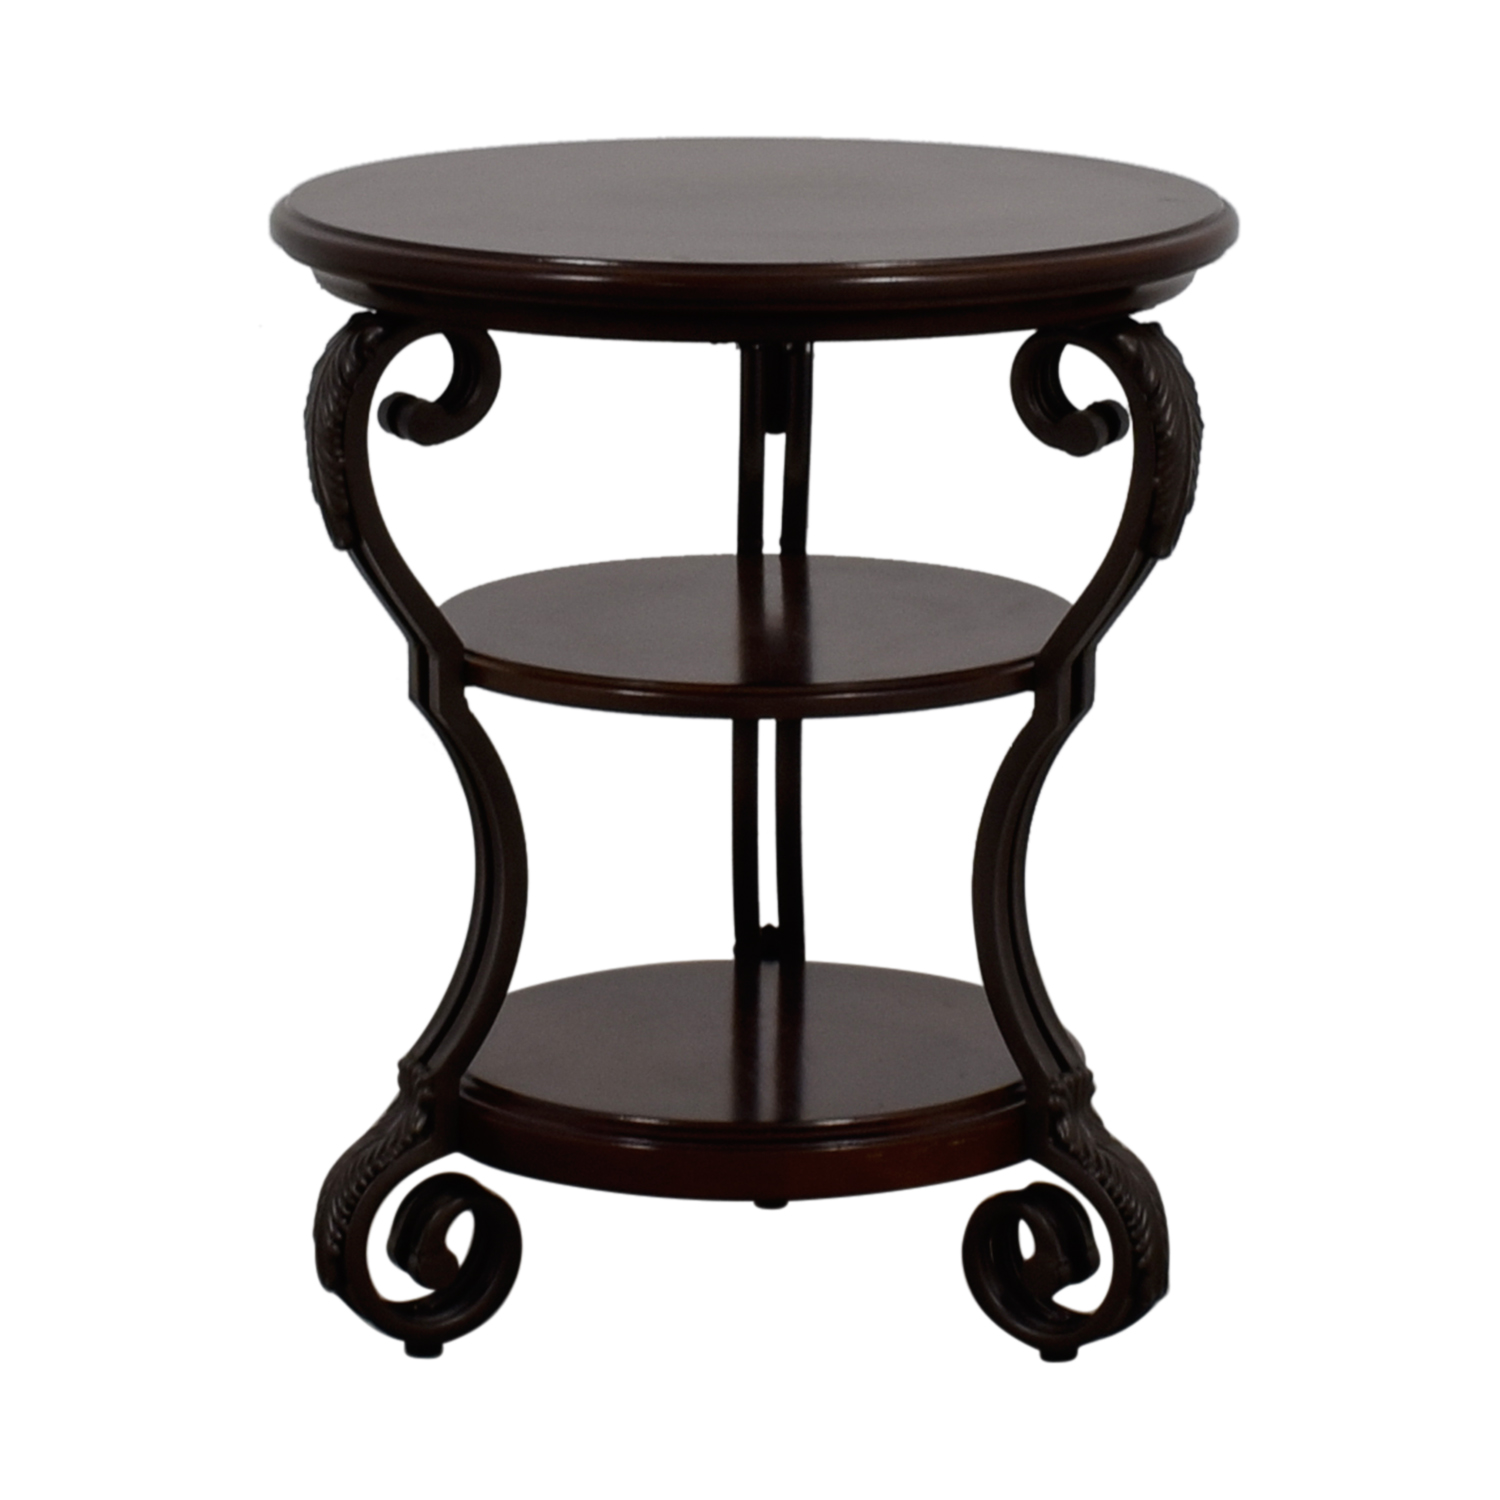 Ashley Furniture Ashley Furniture Round Wood End Table nyc